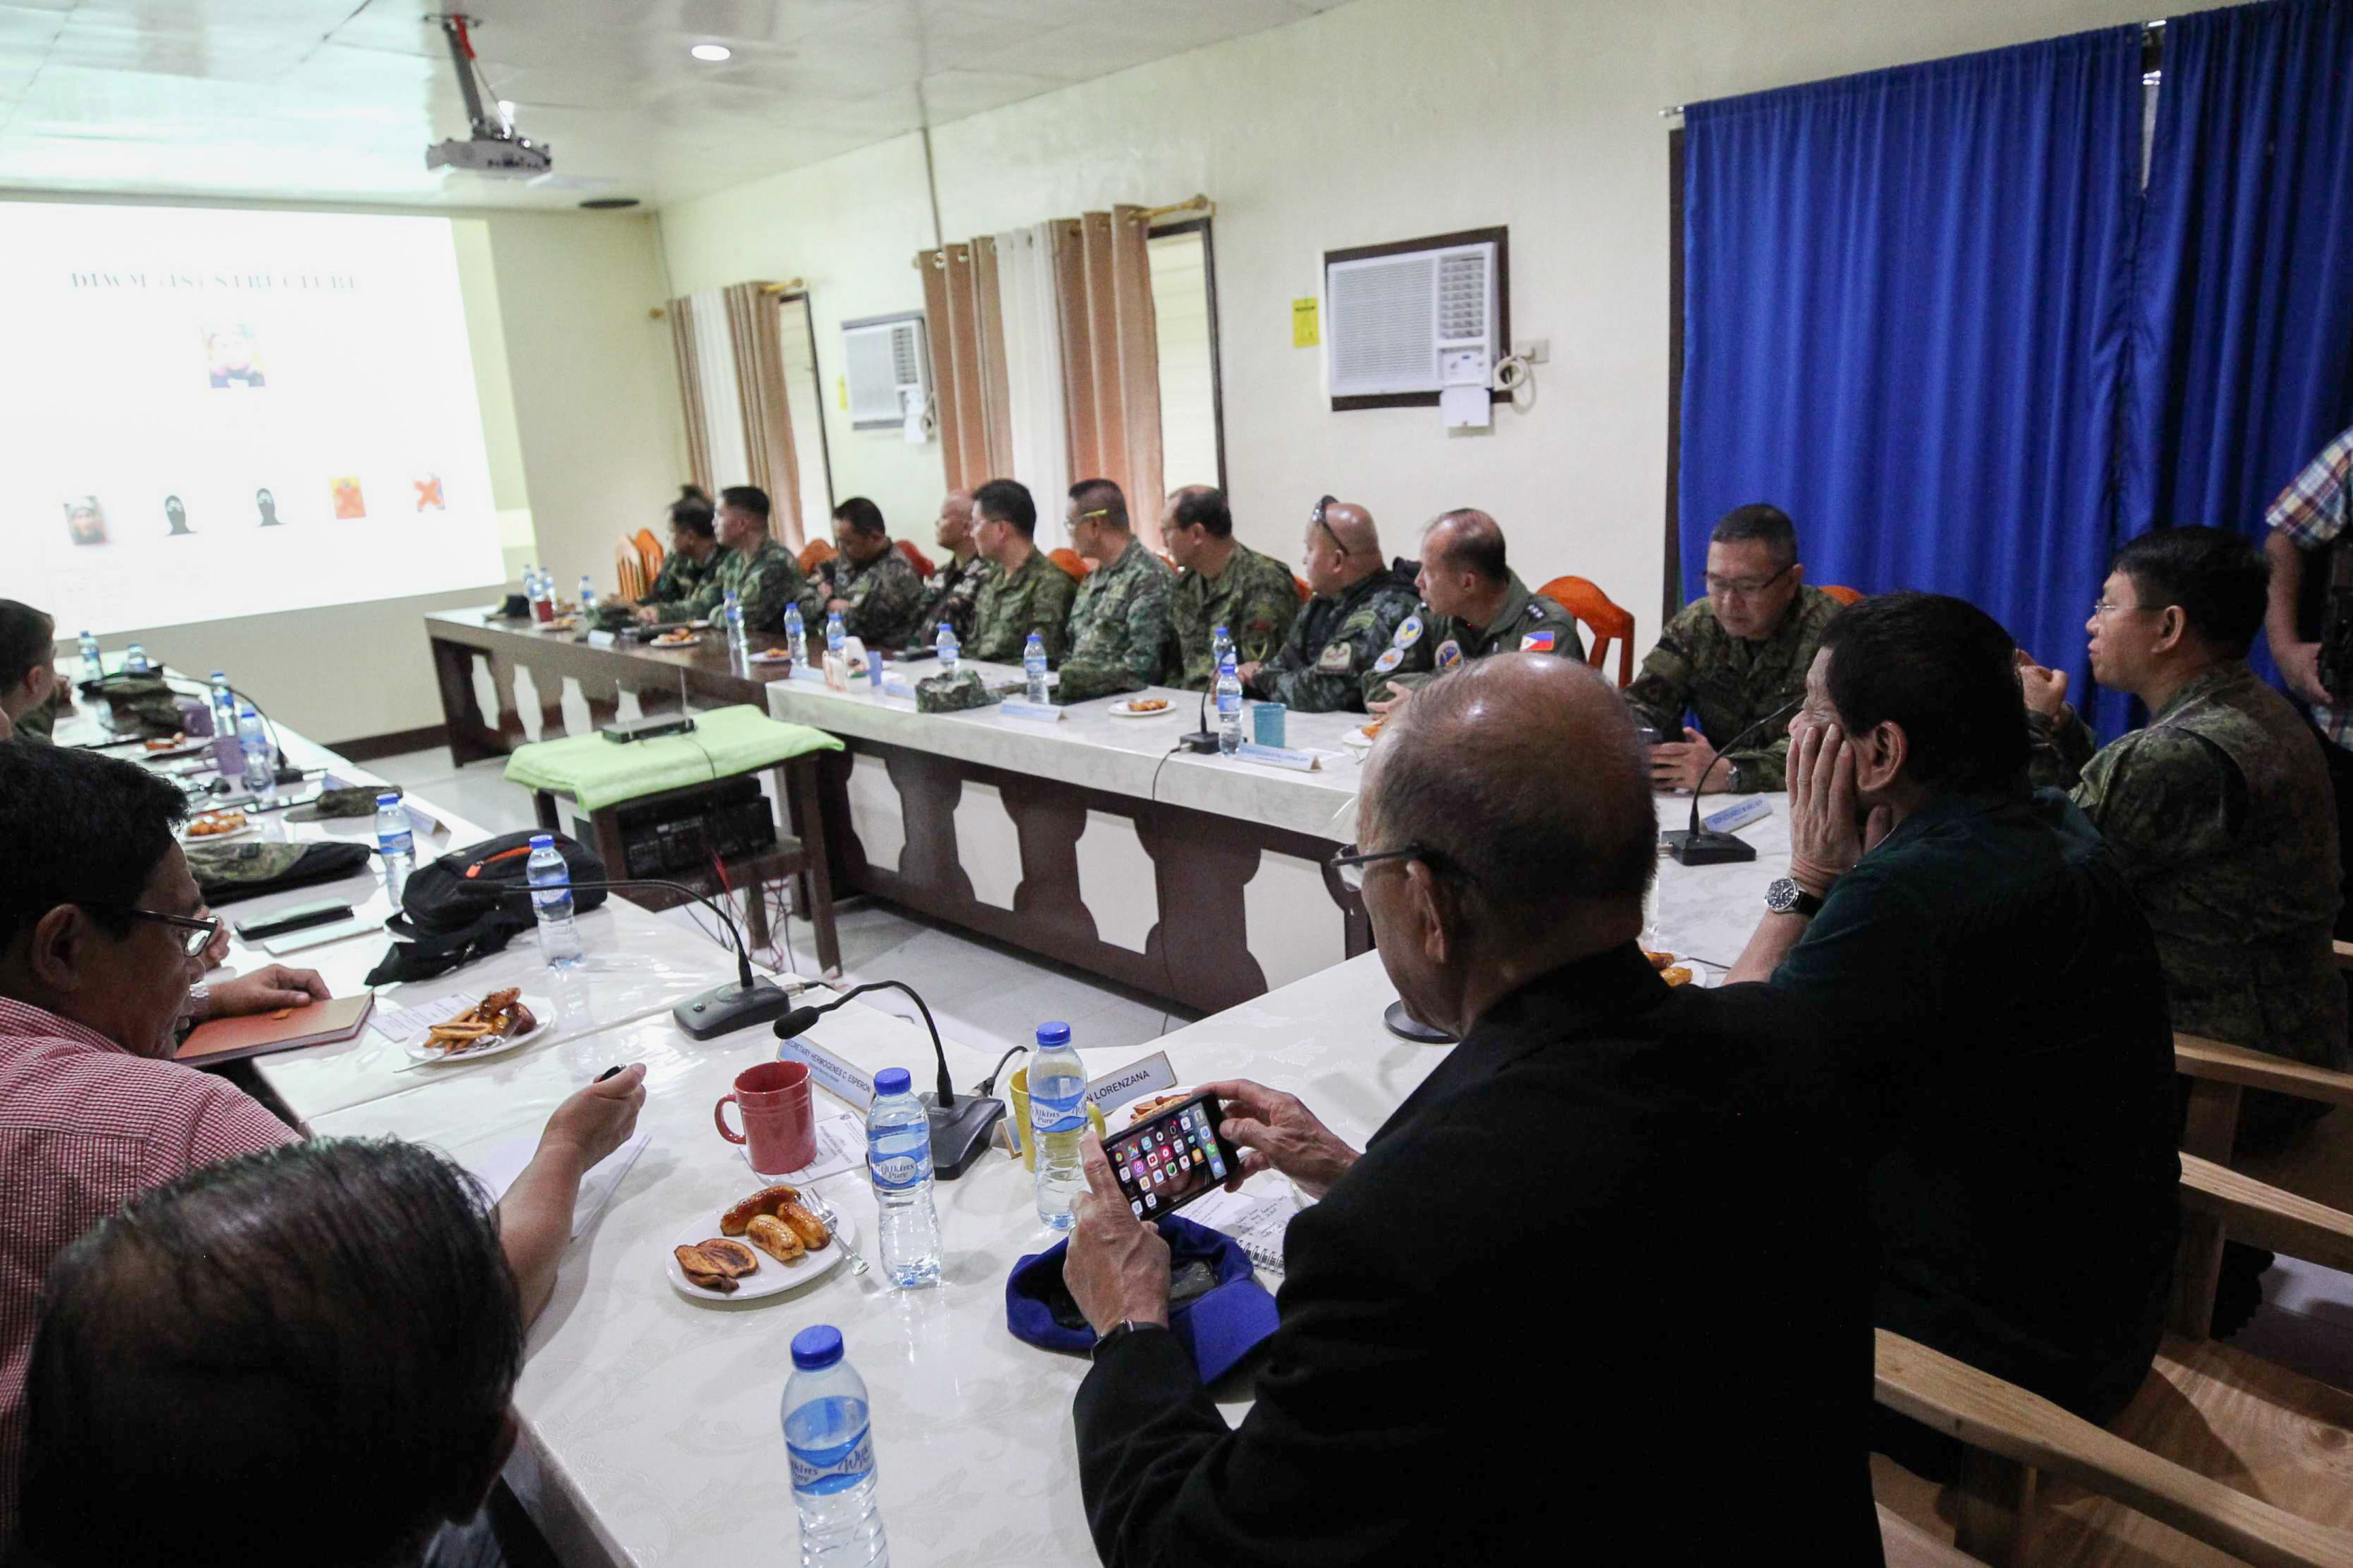 BRIEFING. President Duterte is given a briefing on the Marawi situation on May 26, 2017. Presidential Photo